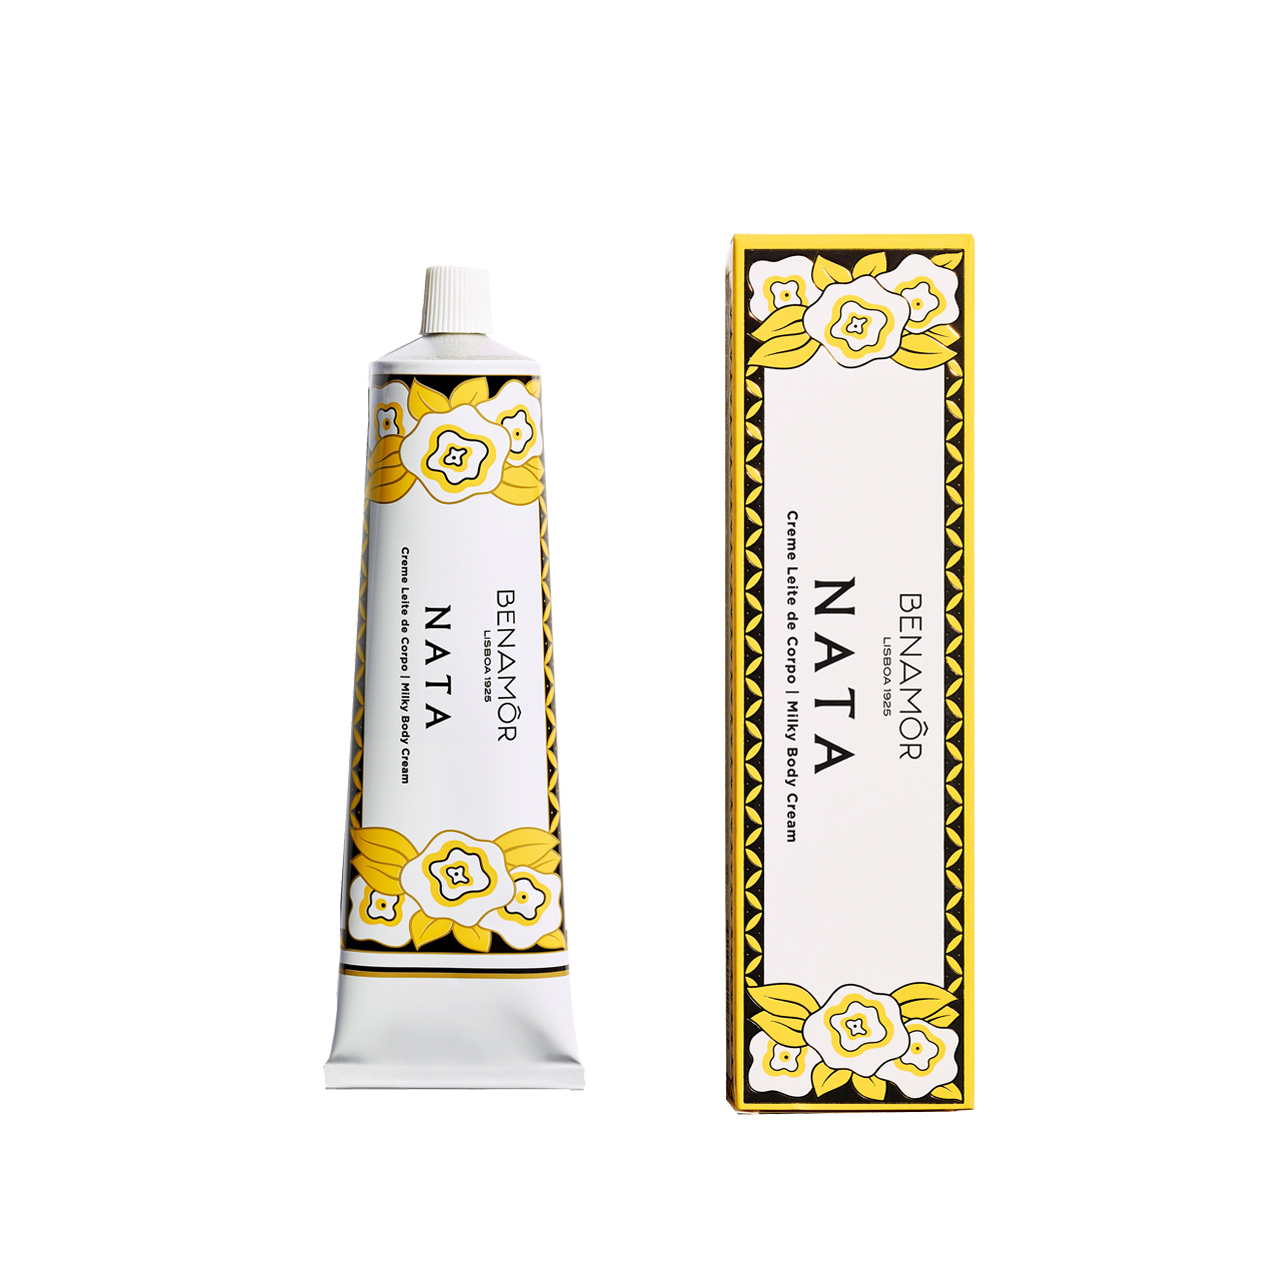 Nata - Body Cream